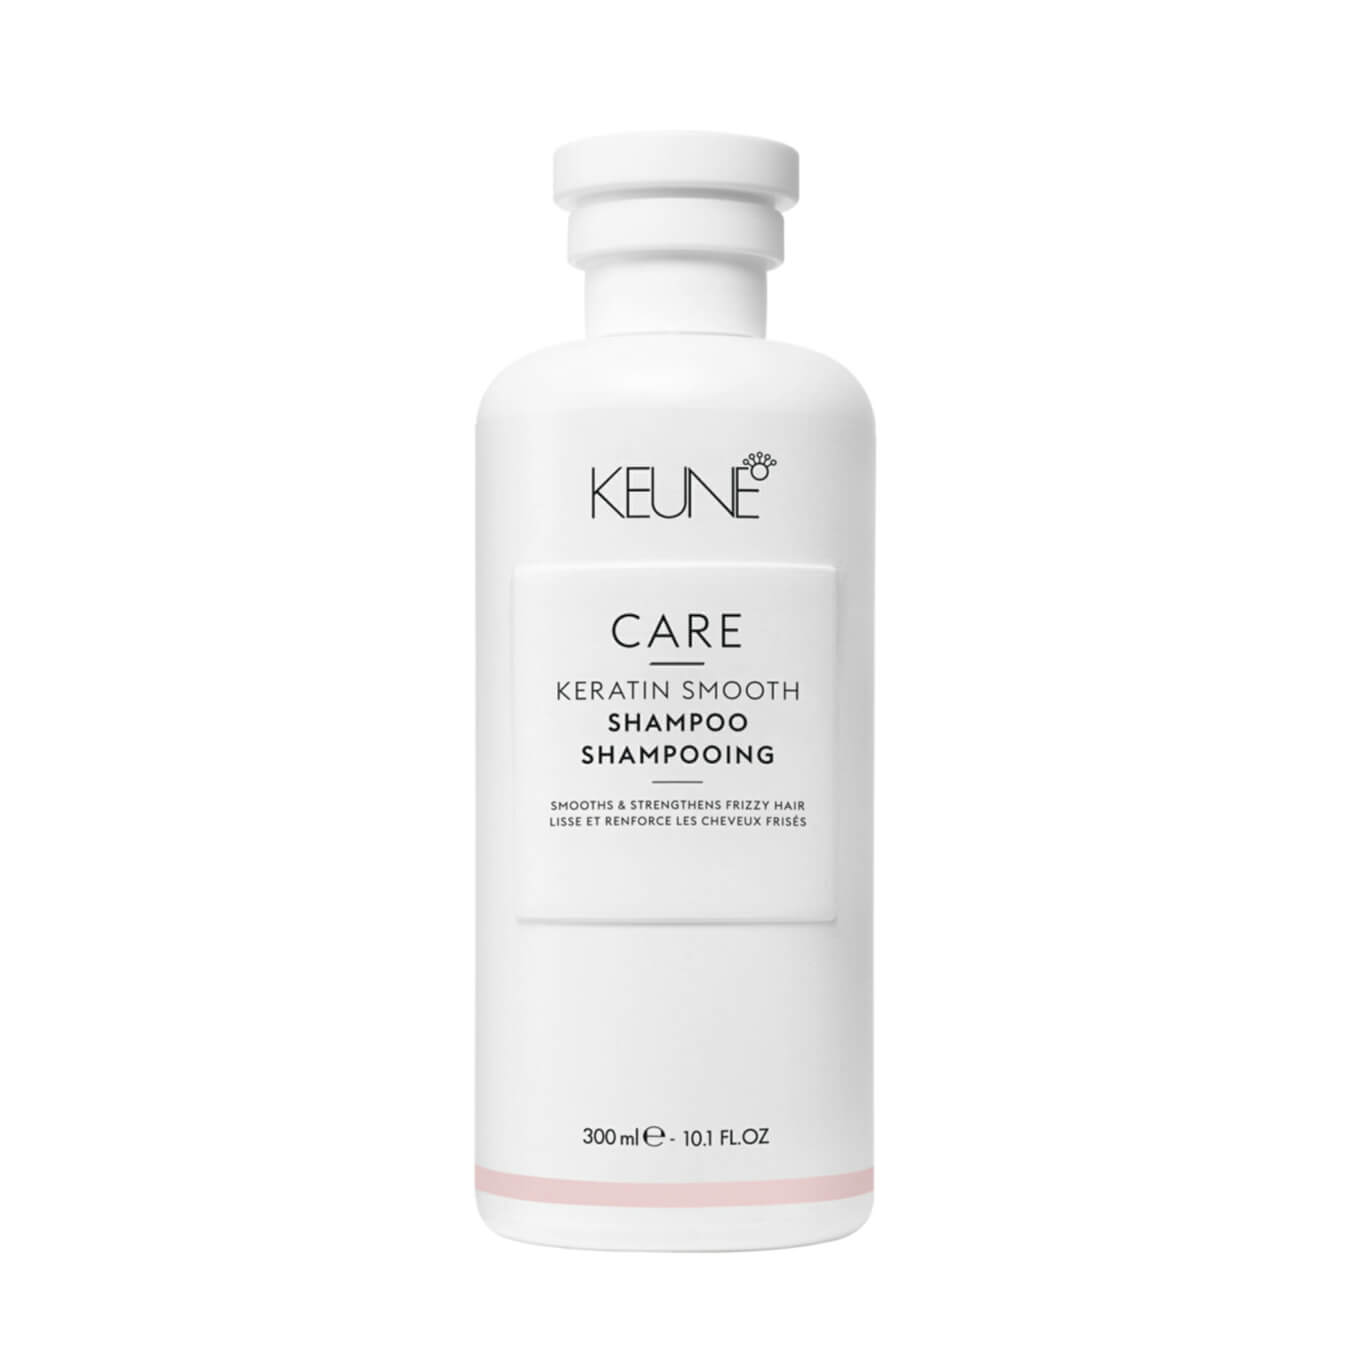 Koop Keune Care Keratin Smooth Shampoo 300ml